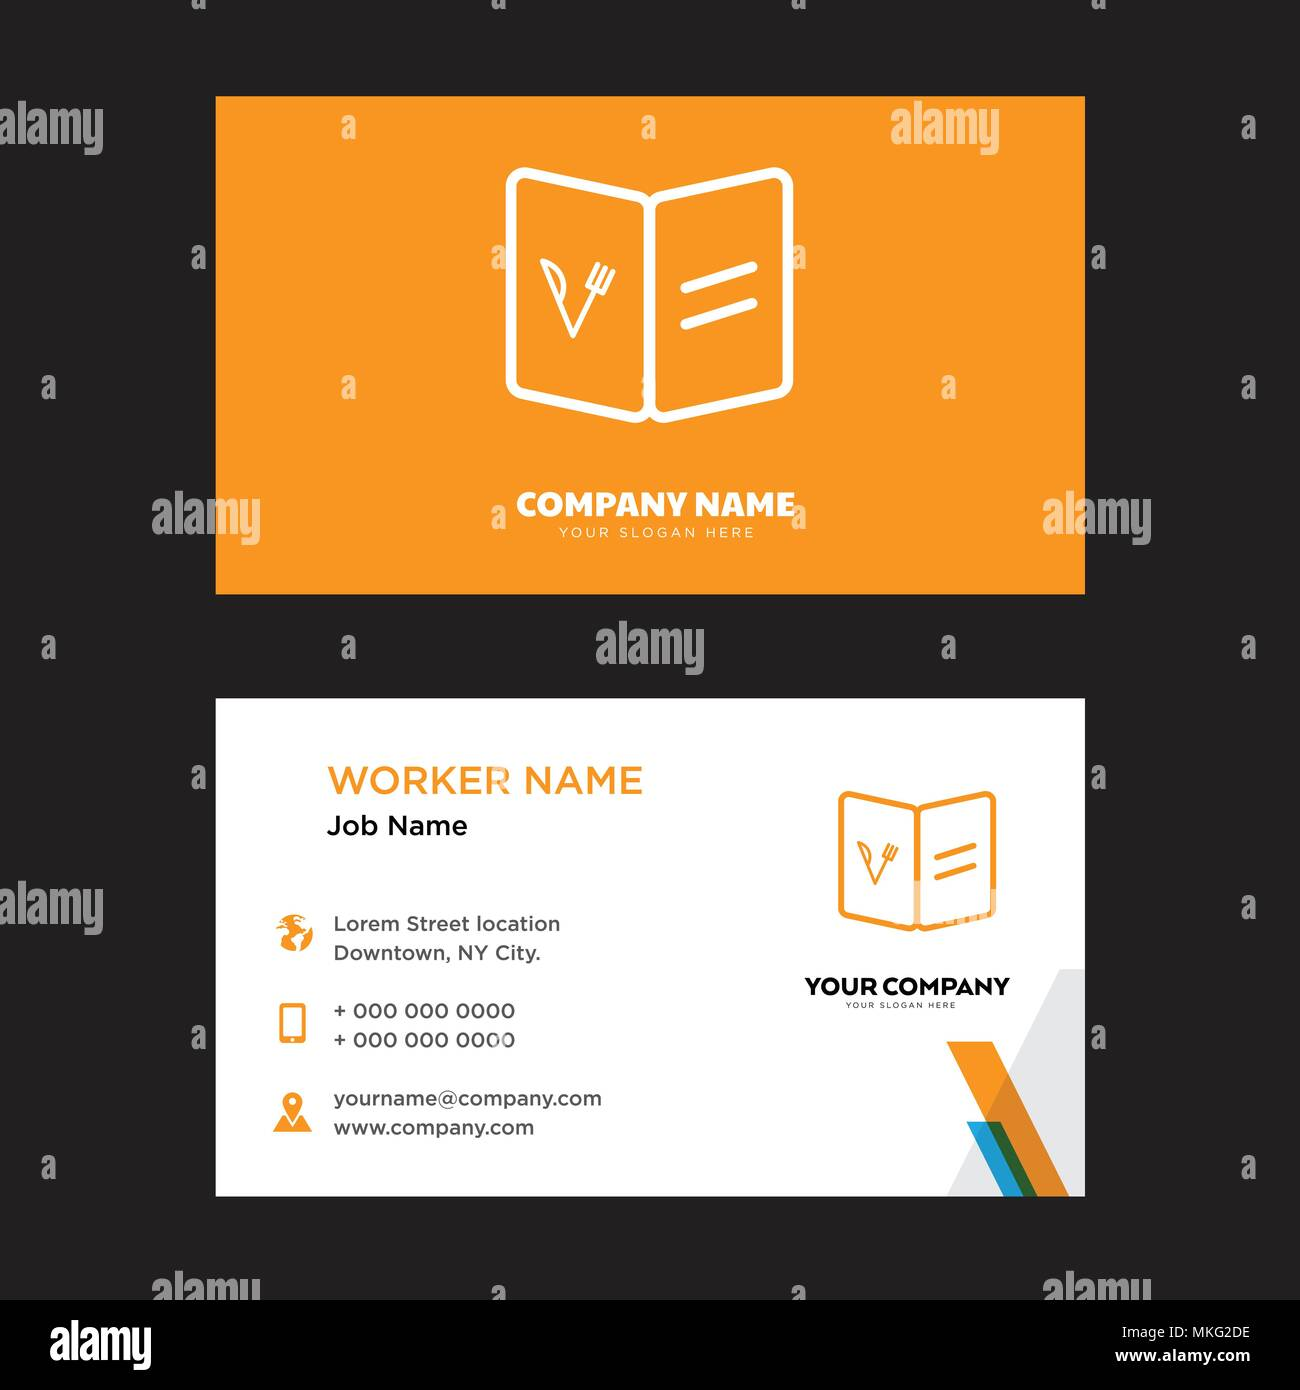 recipe business card design template visiting for your company